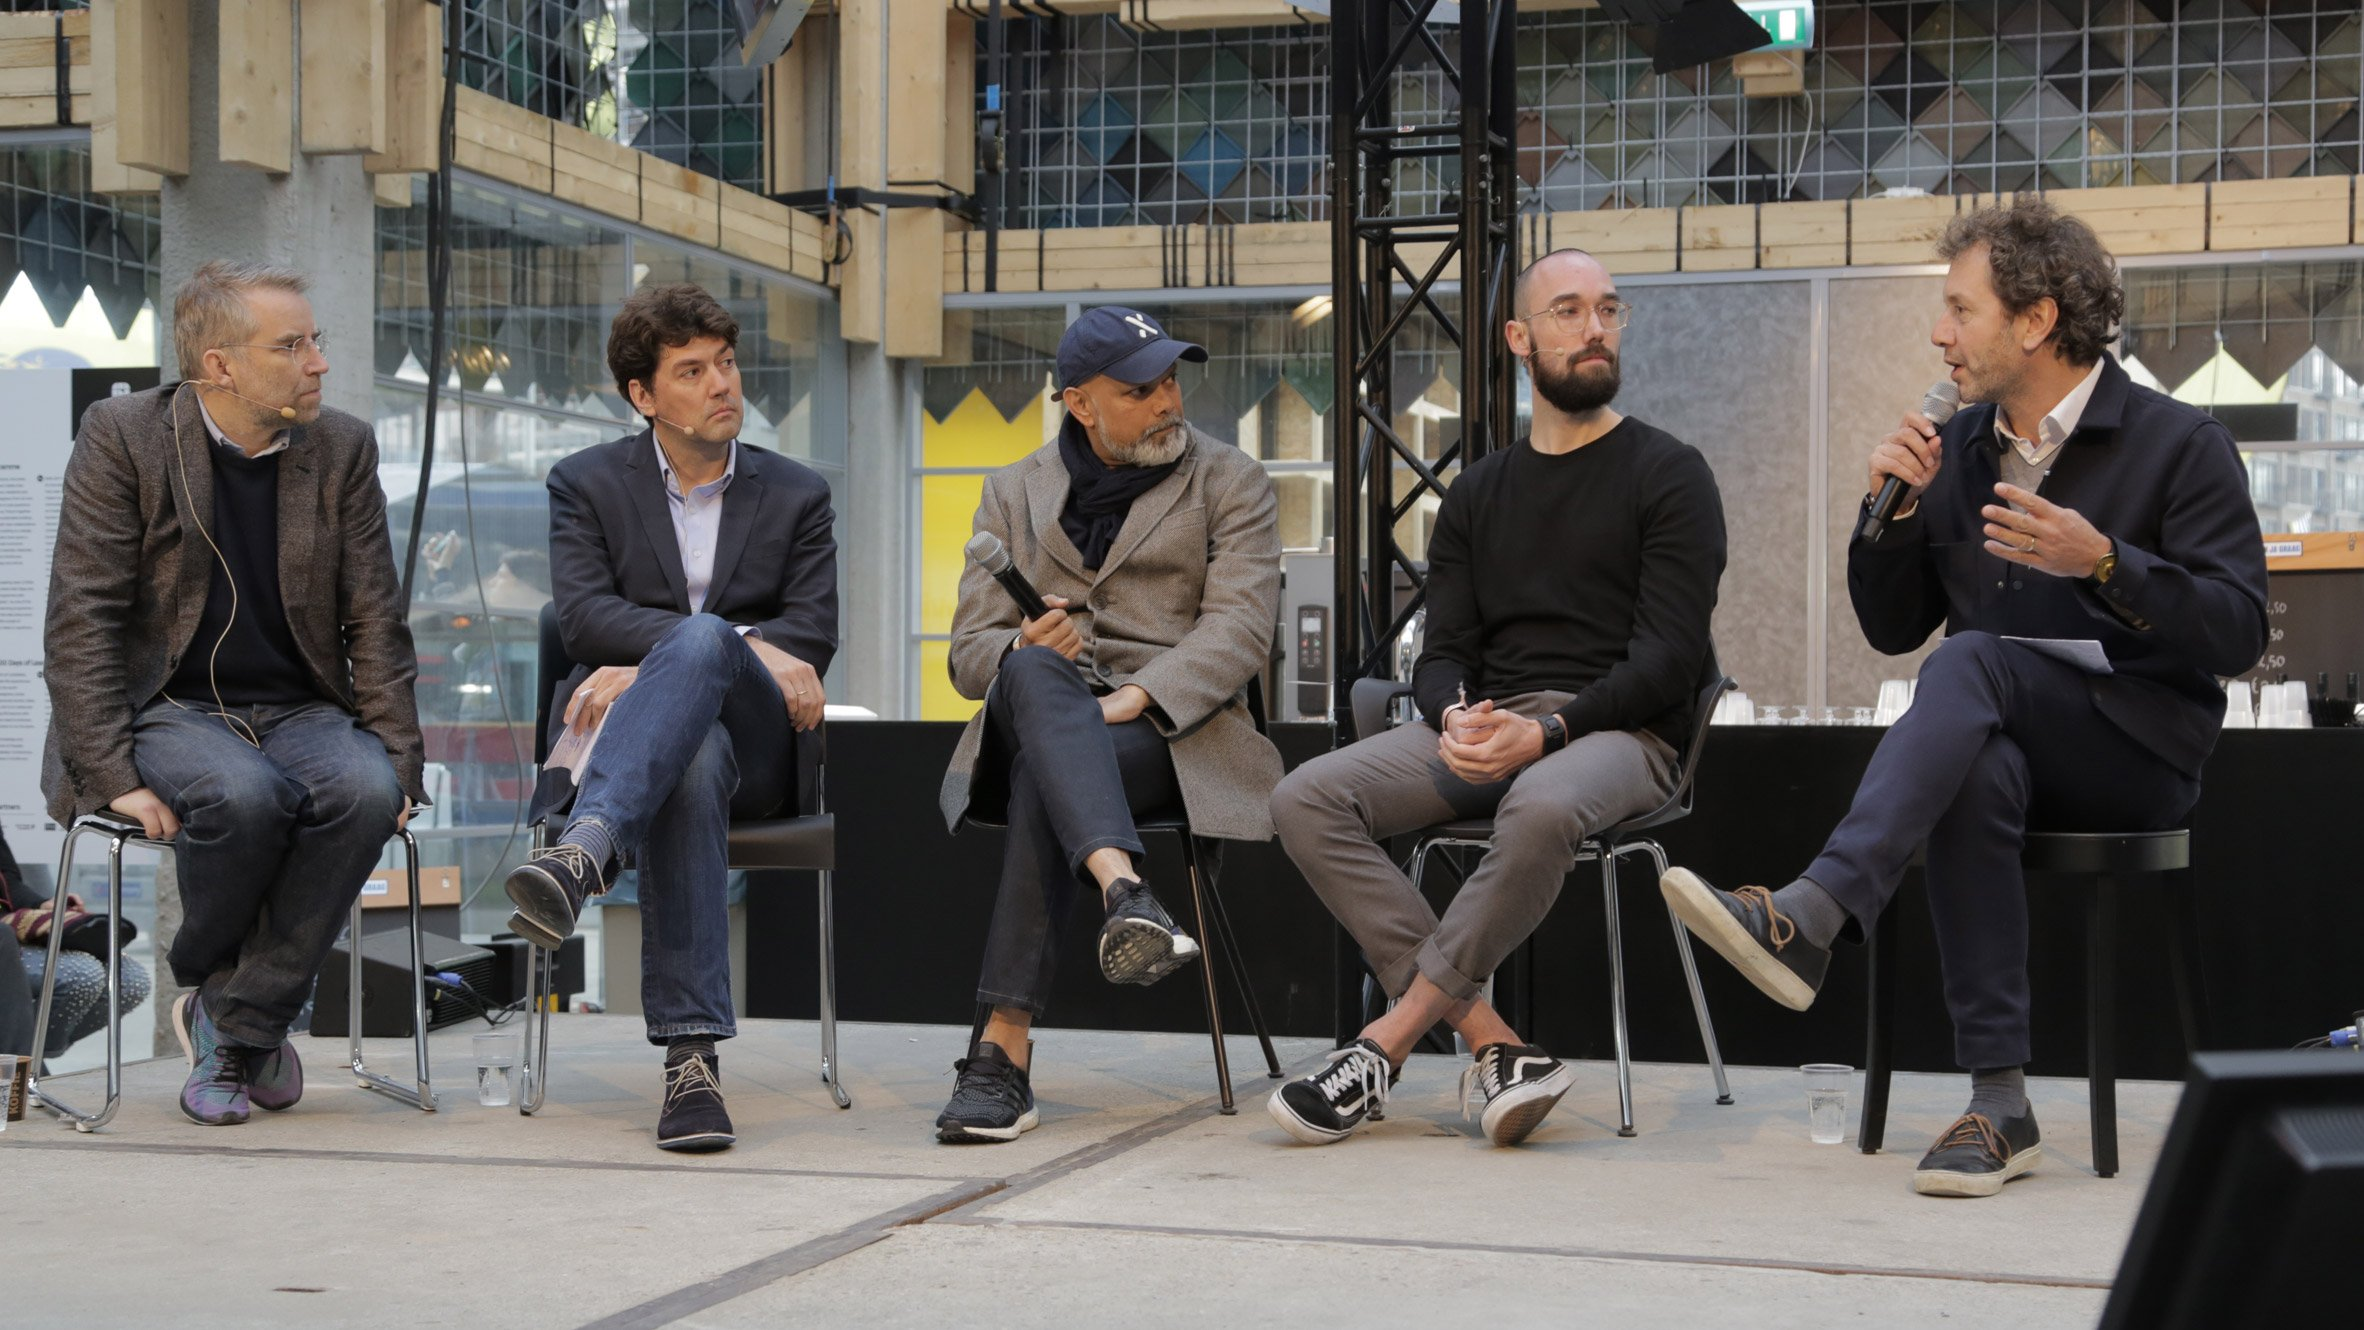 Design can help change the system, say speakers at Dezeen's politics talk